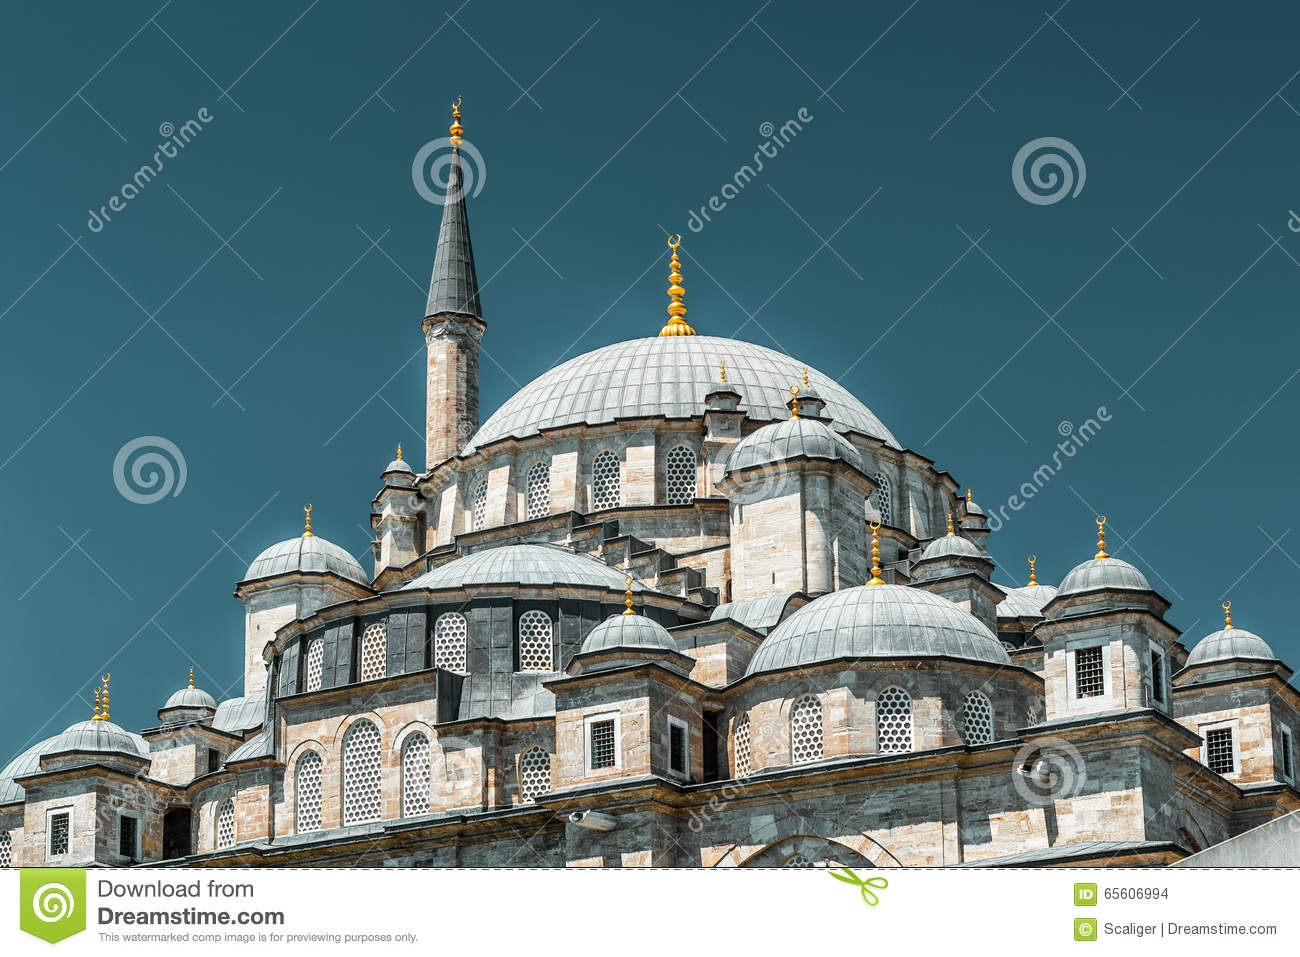 Download The Fatih Mosque (Conqueror's Mosque) In Istanbul Stock Photo - Image of muslim, famous: 65606994